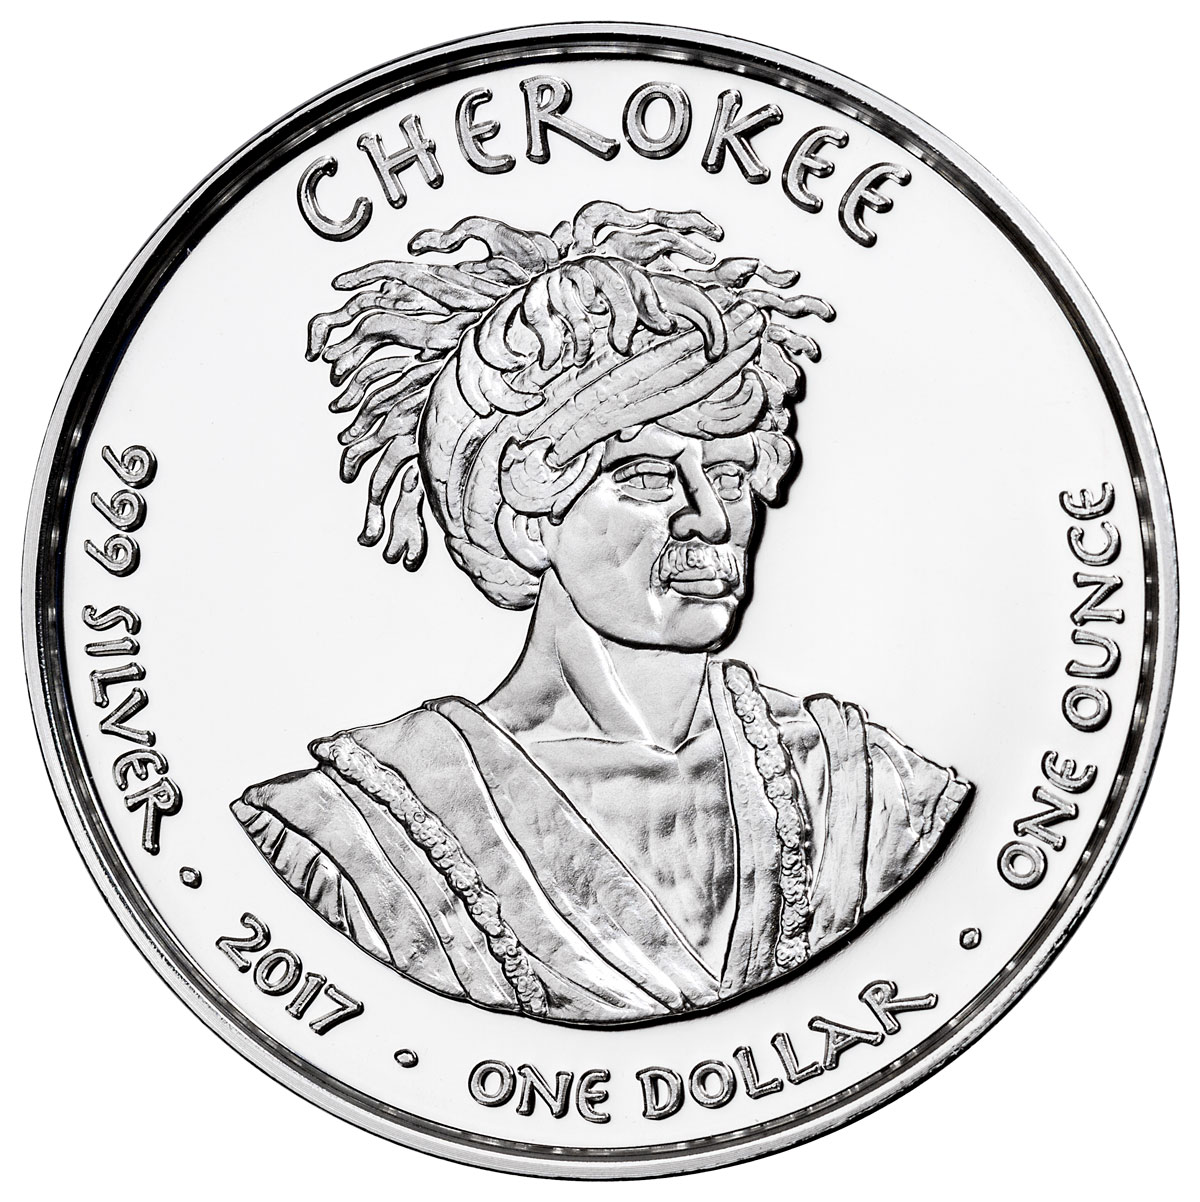 2017 Native American Silver Dollar - Georgia Cherokee - Otter 1 oz Silver Proof Coin GEM Proof Original Mint Capsule